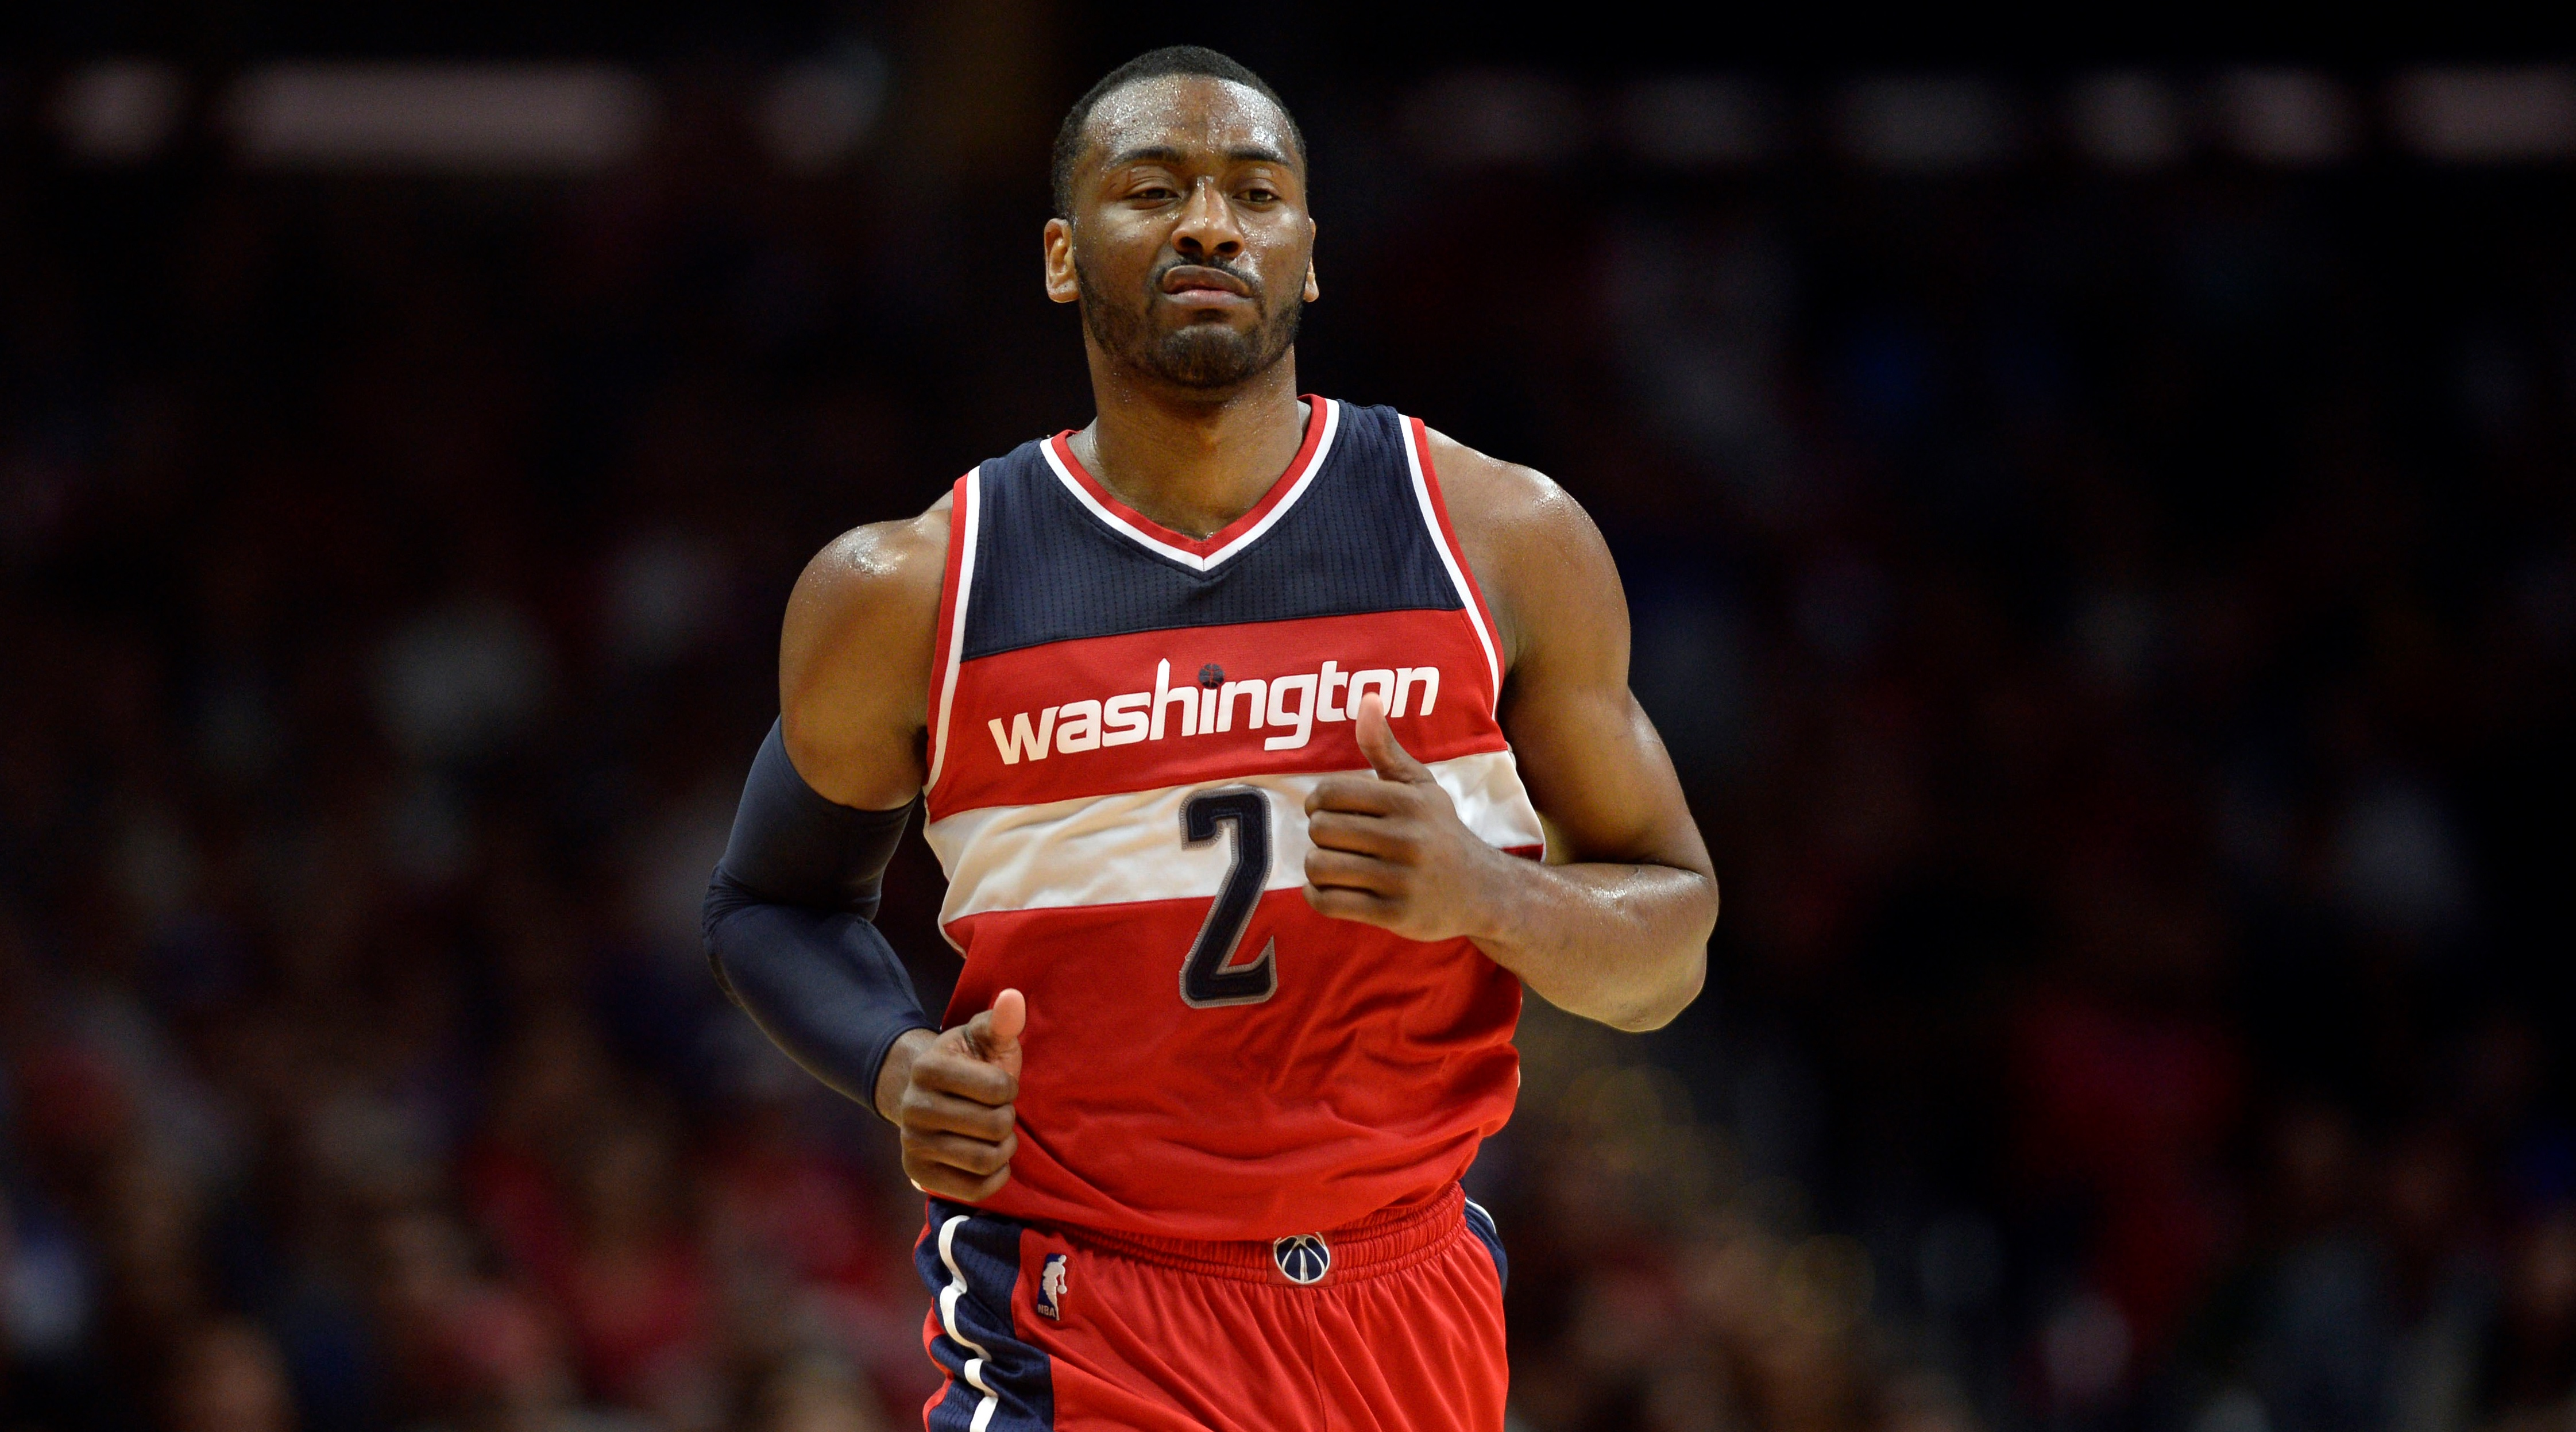 John Wall Signs Contract Extension, Guarantees Championship - OpenCourt ...